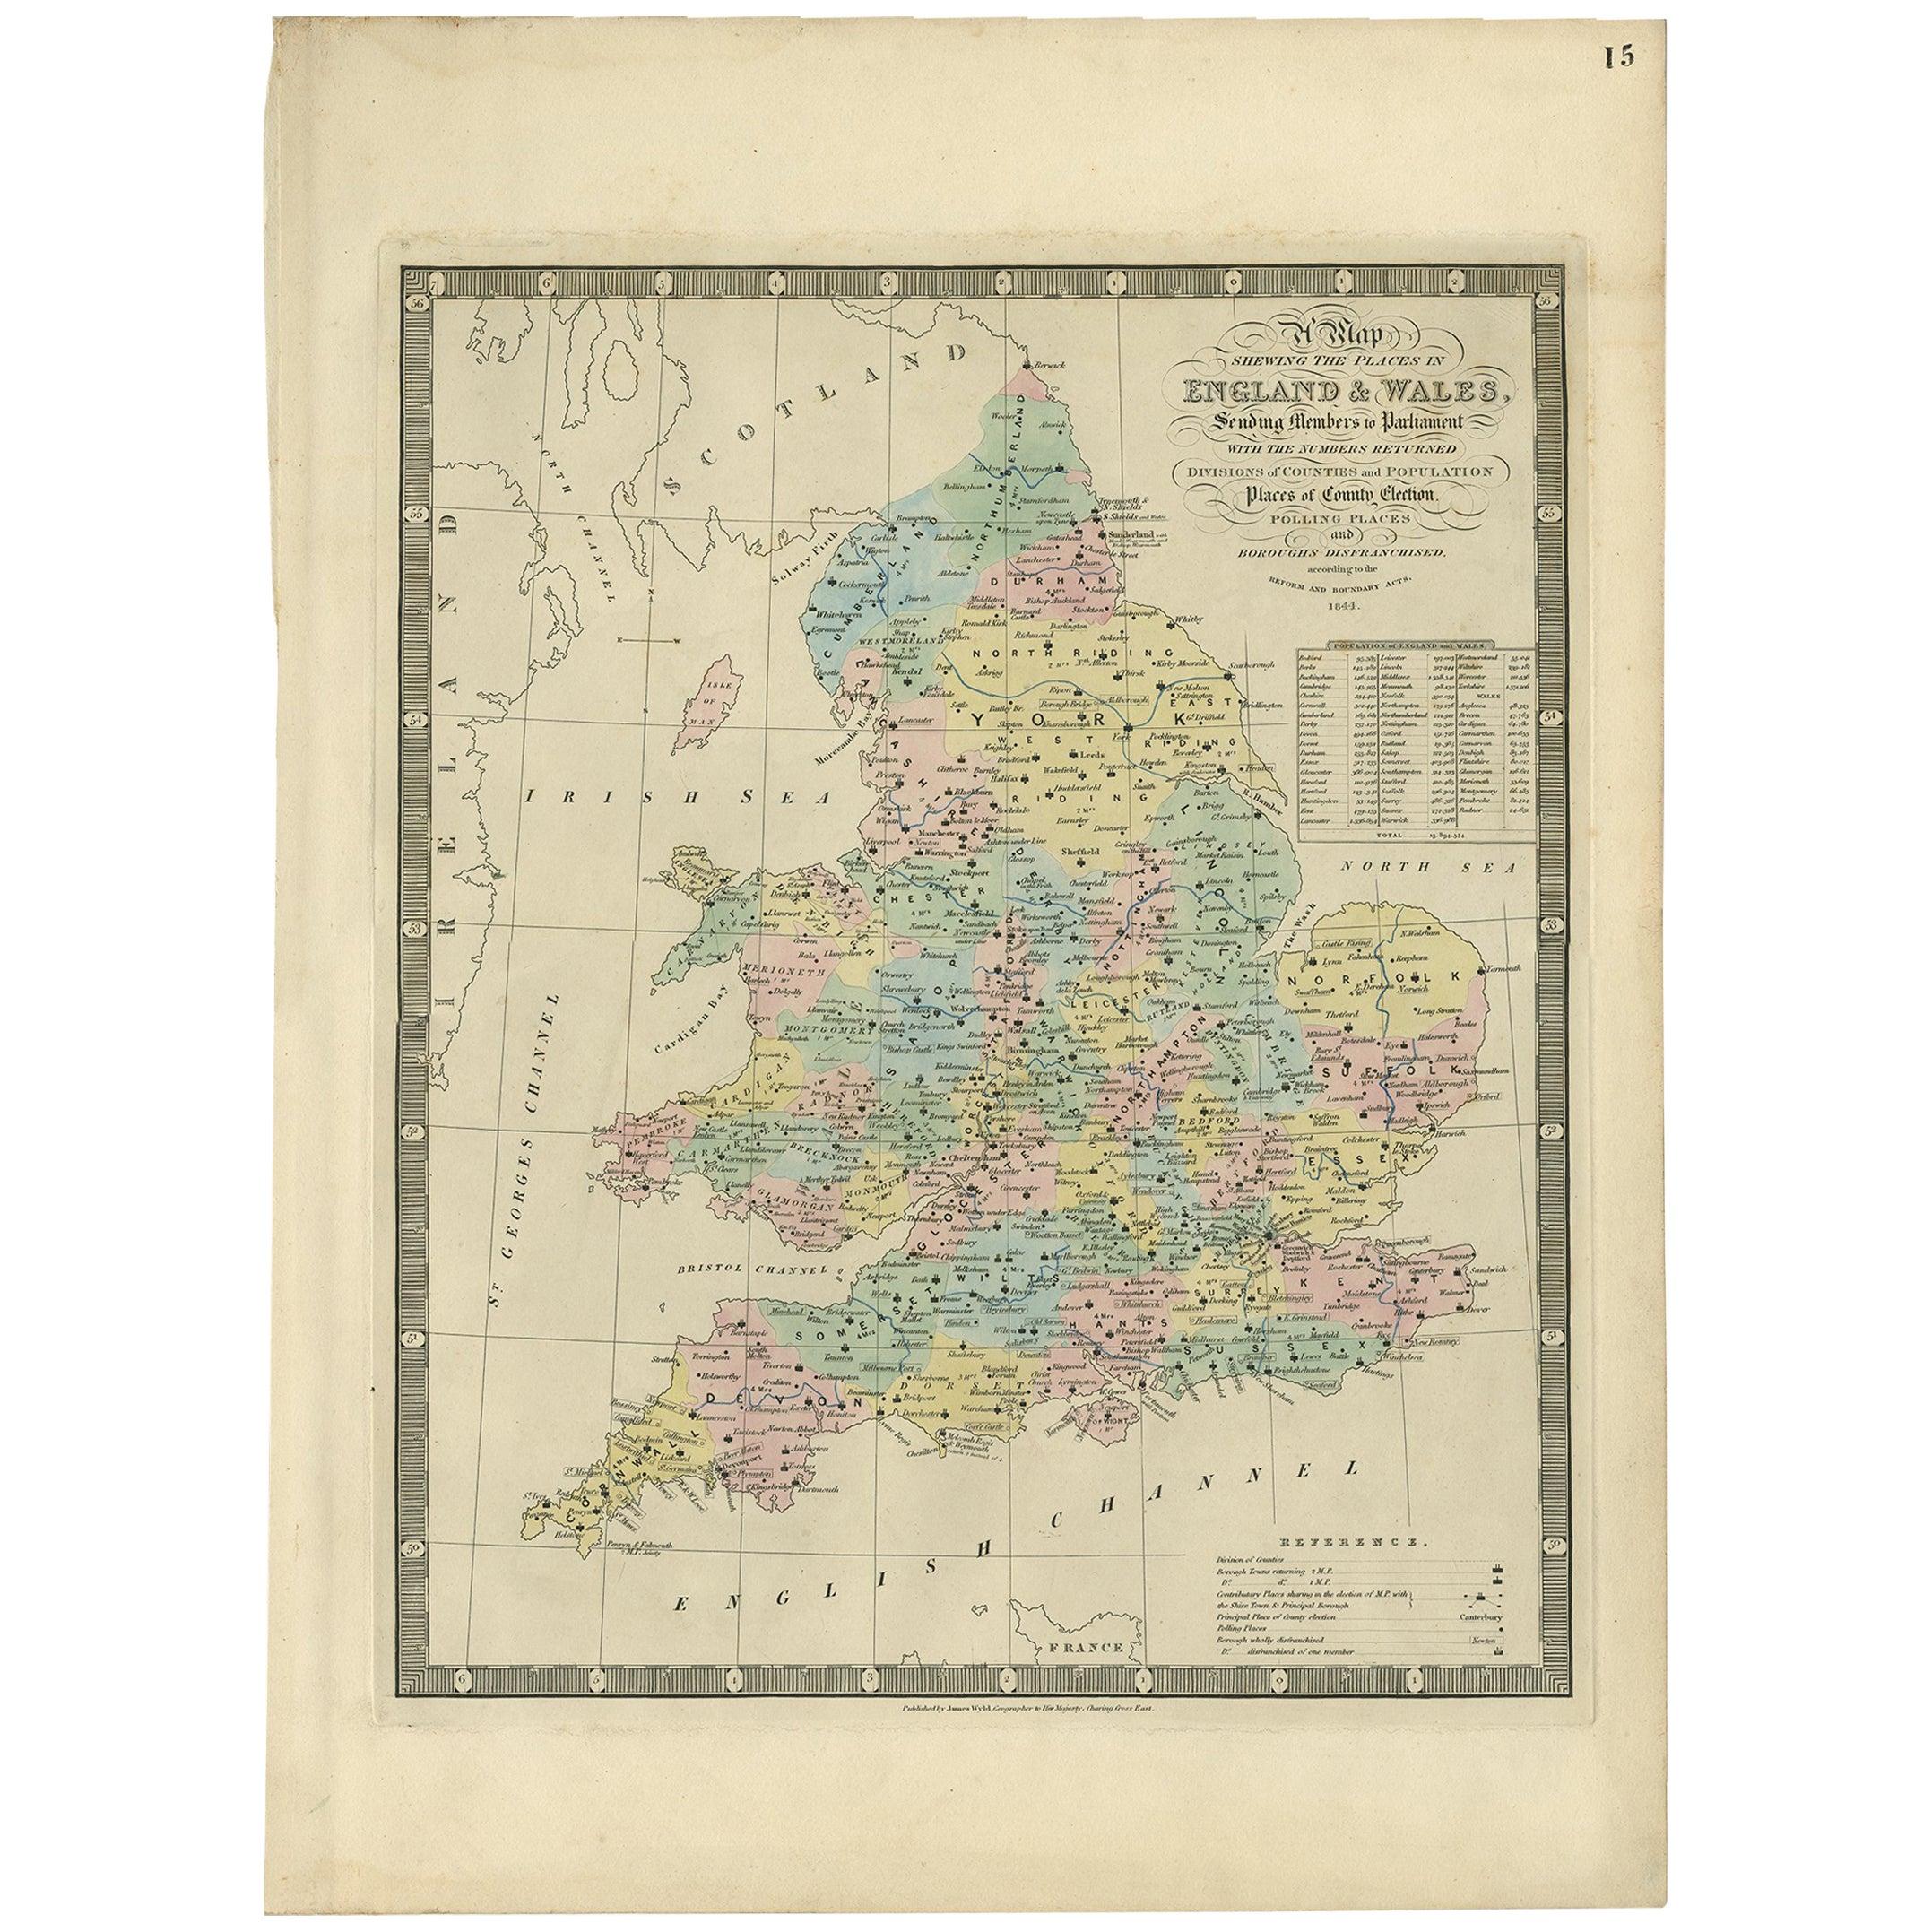 Antique Map of England and Wales by J. Wyld, 1844